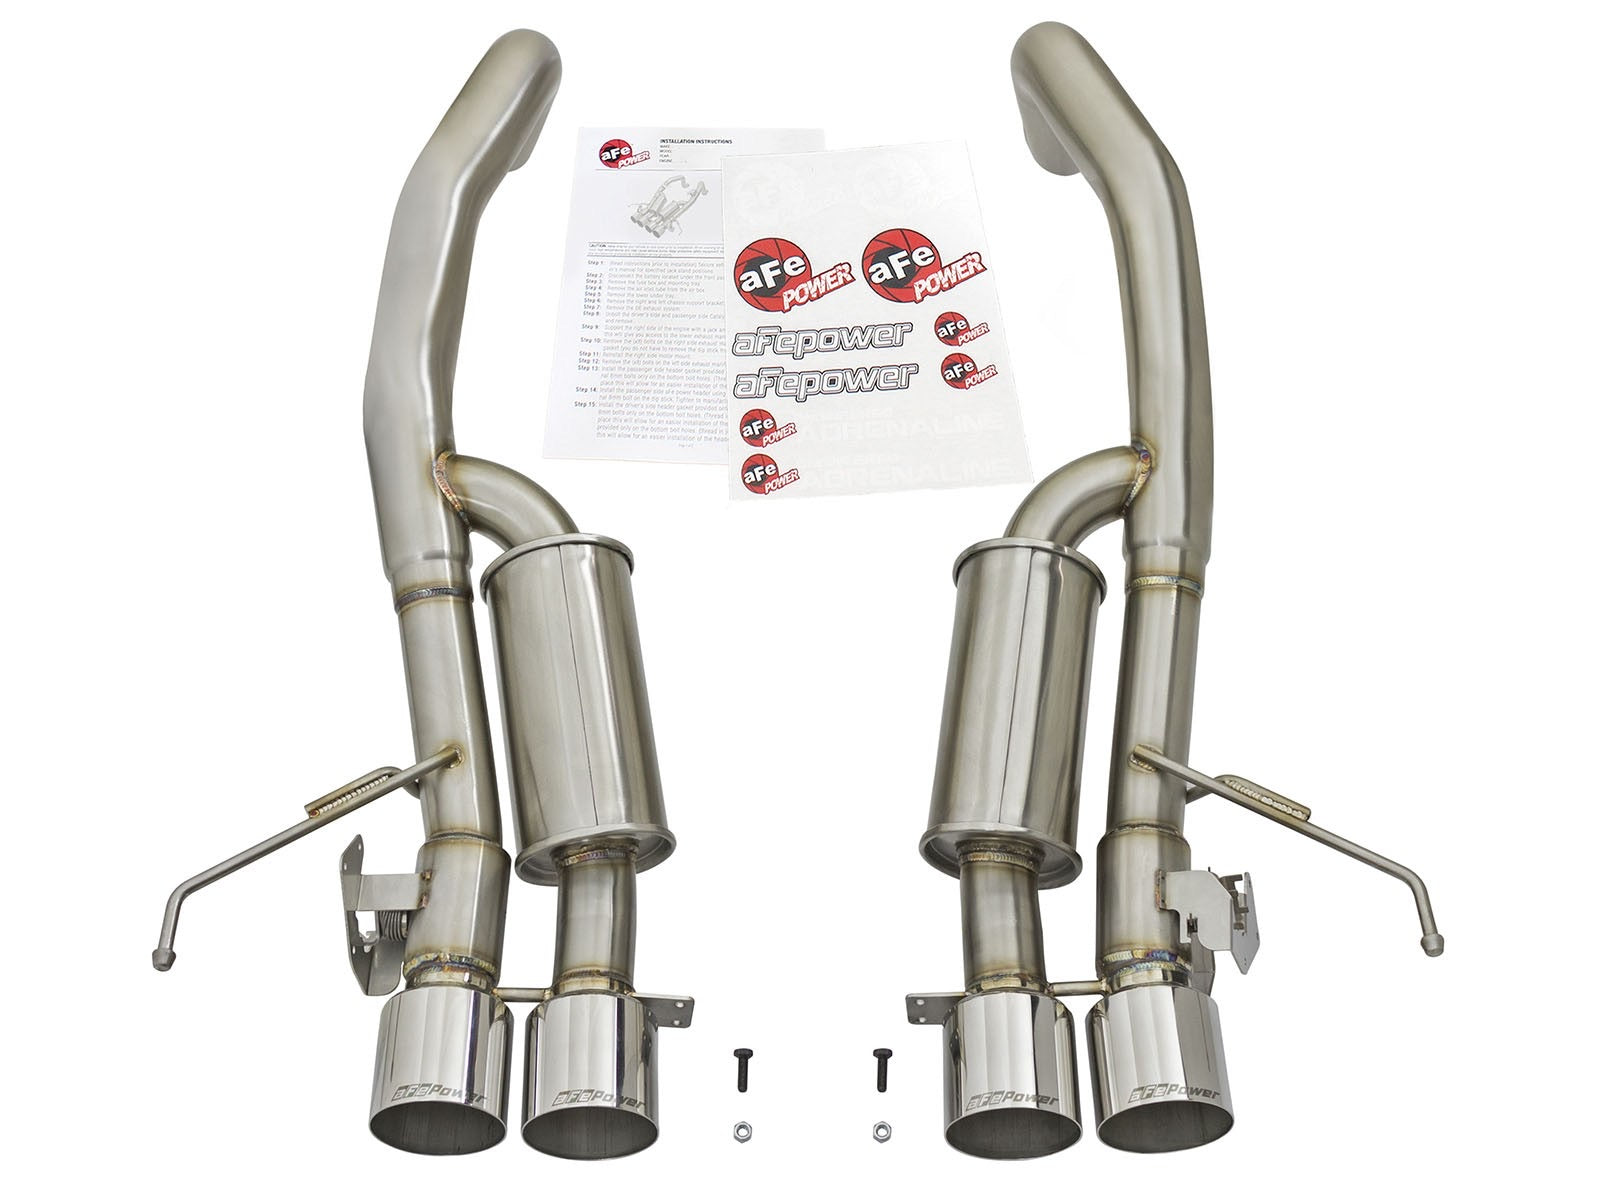 "MACH Force-Xp 3"" to 2-1/2"" 304 Stainless Steel Axle-Back Exhaust System Chevrolet Corvette Z06 (C7) 15-19 V8-6.2L (sc)"